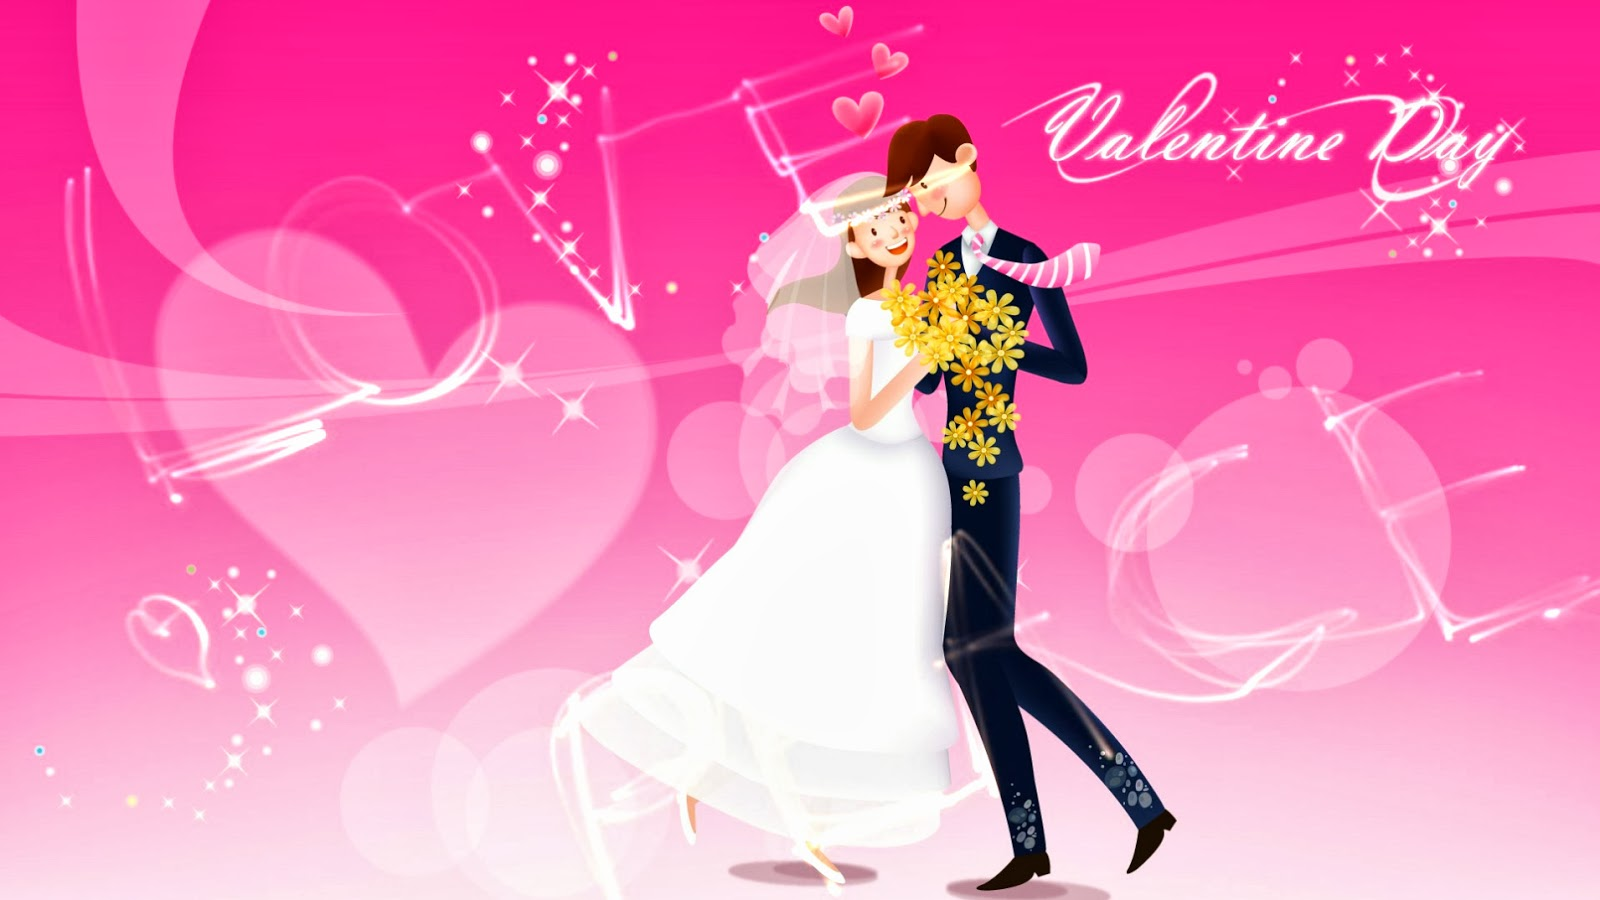 valentines day clipart to download